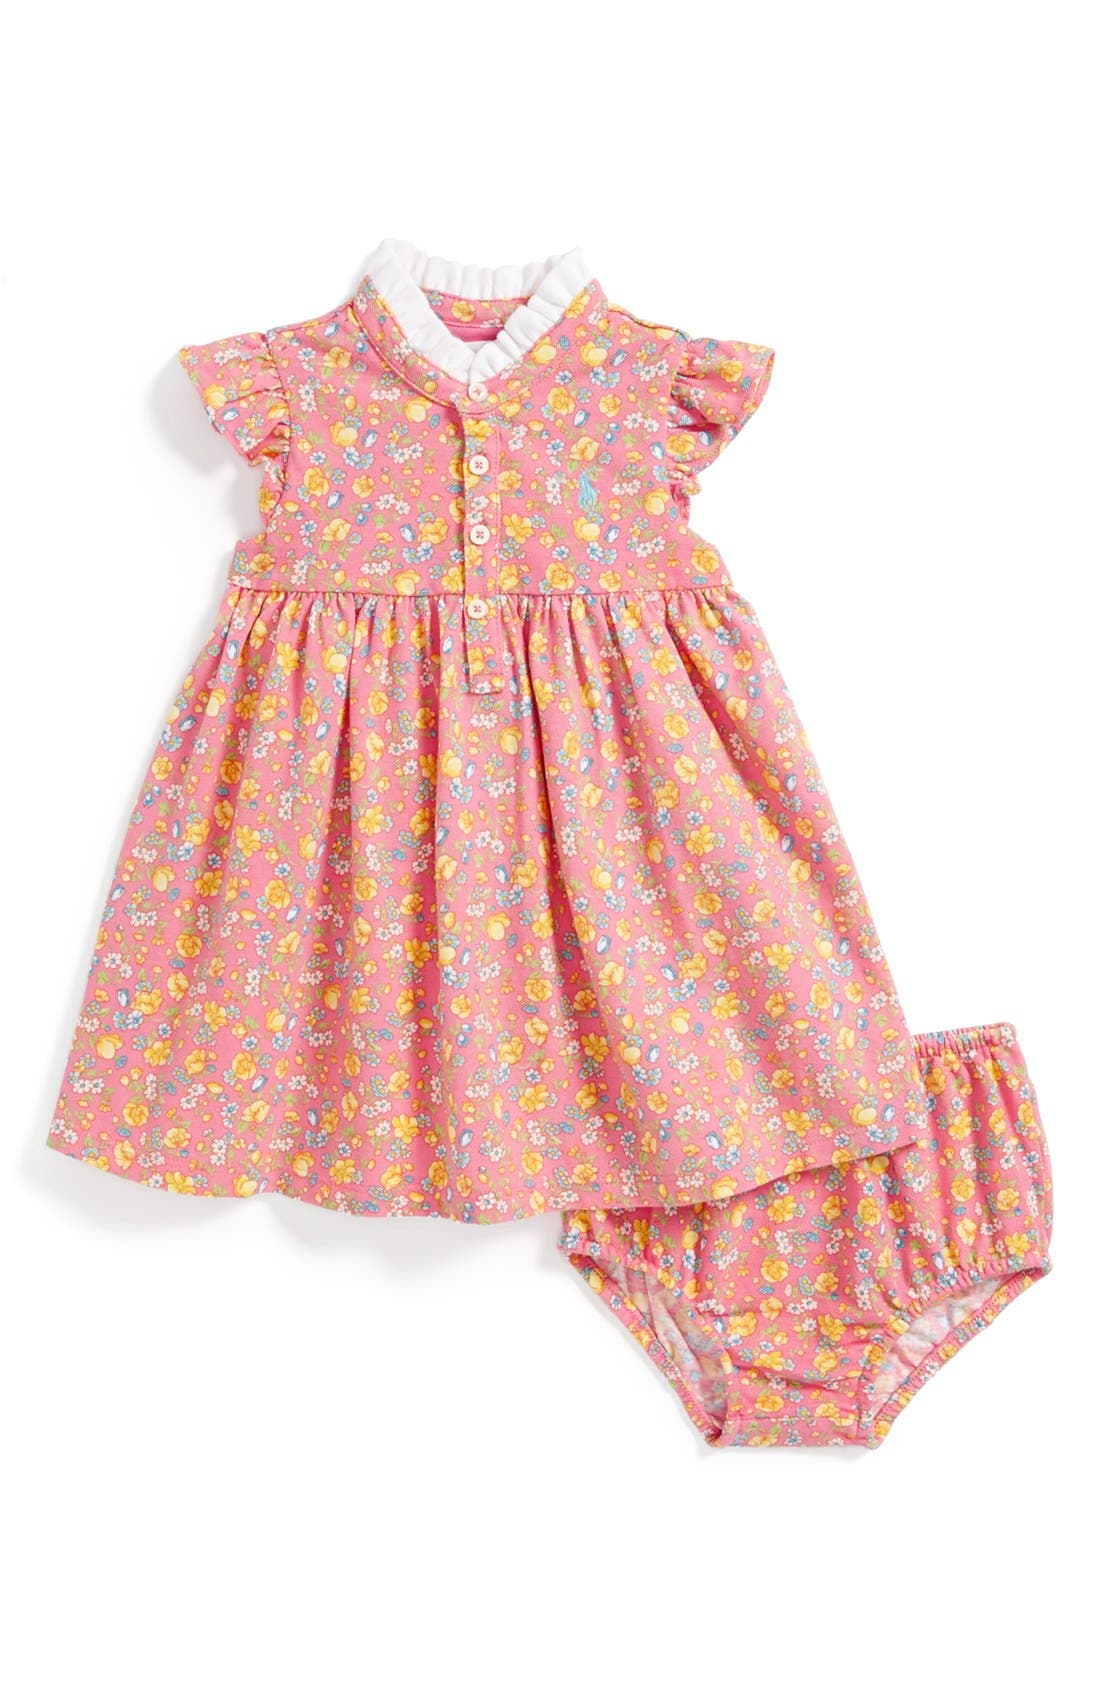 Alternate Image 1 Selected - Ralph Lauren Floral Print Dress & Bloomers (Baby Girls)